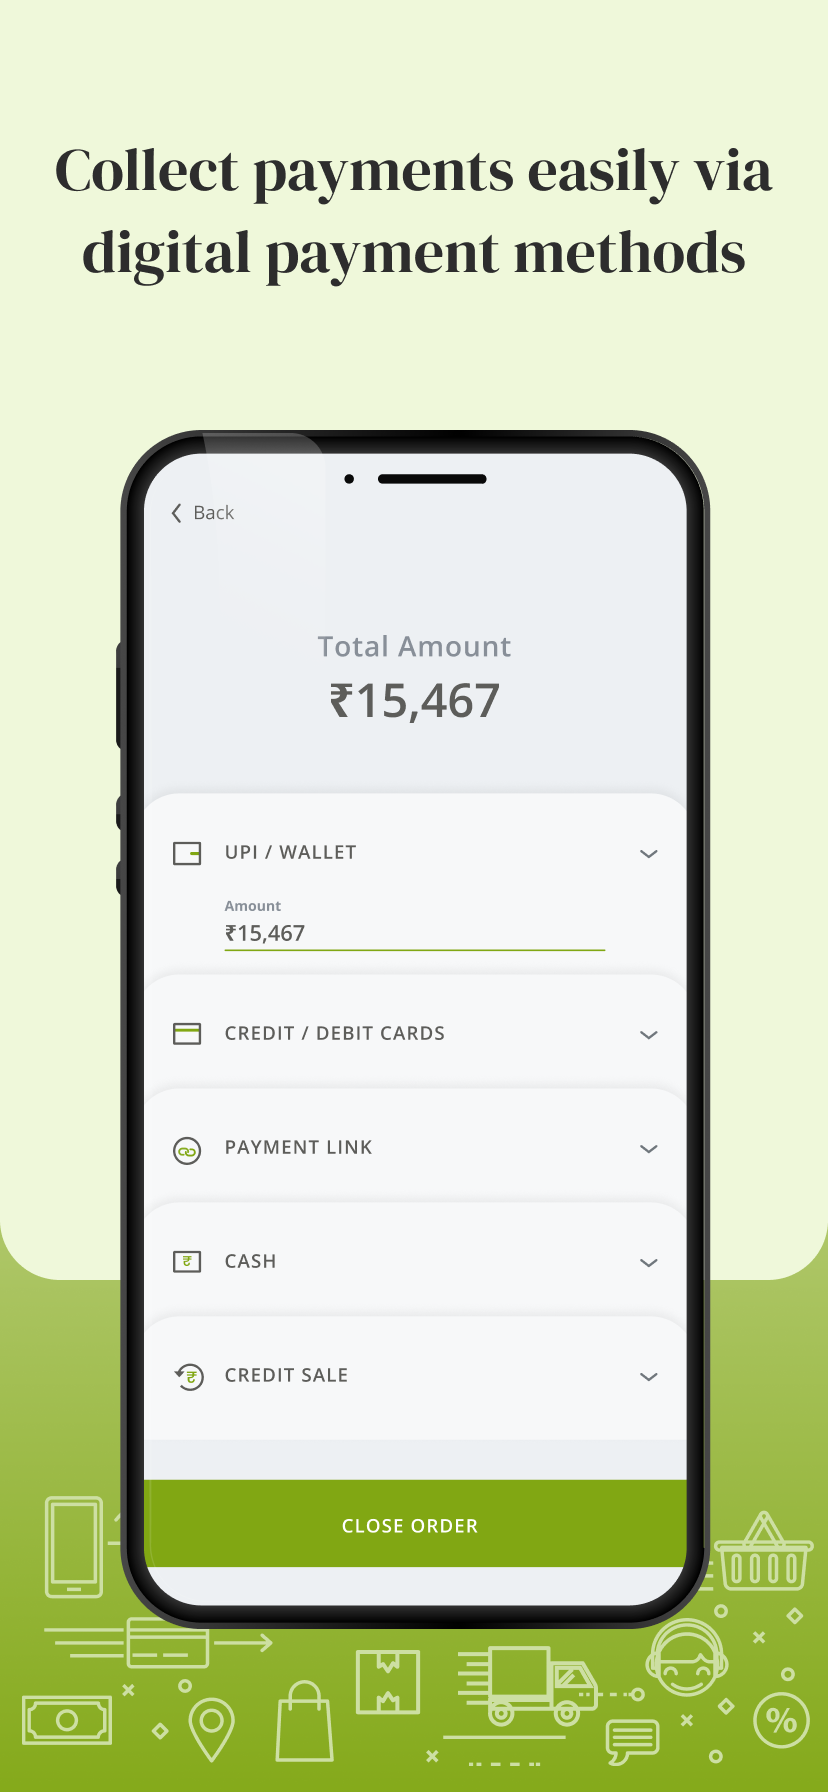 Easily collect digital and cash payments. All your money can be tracked from one place.